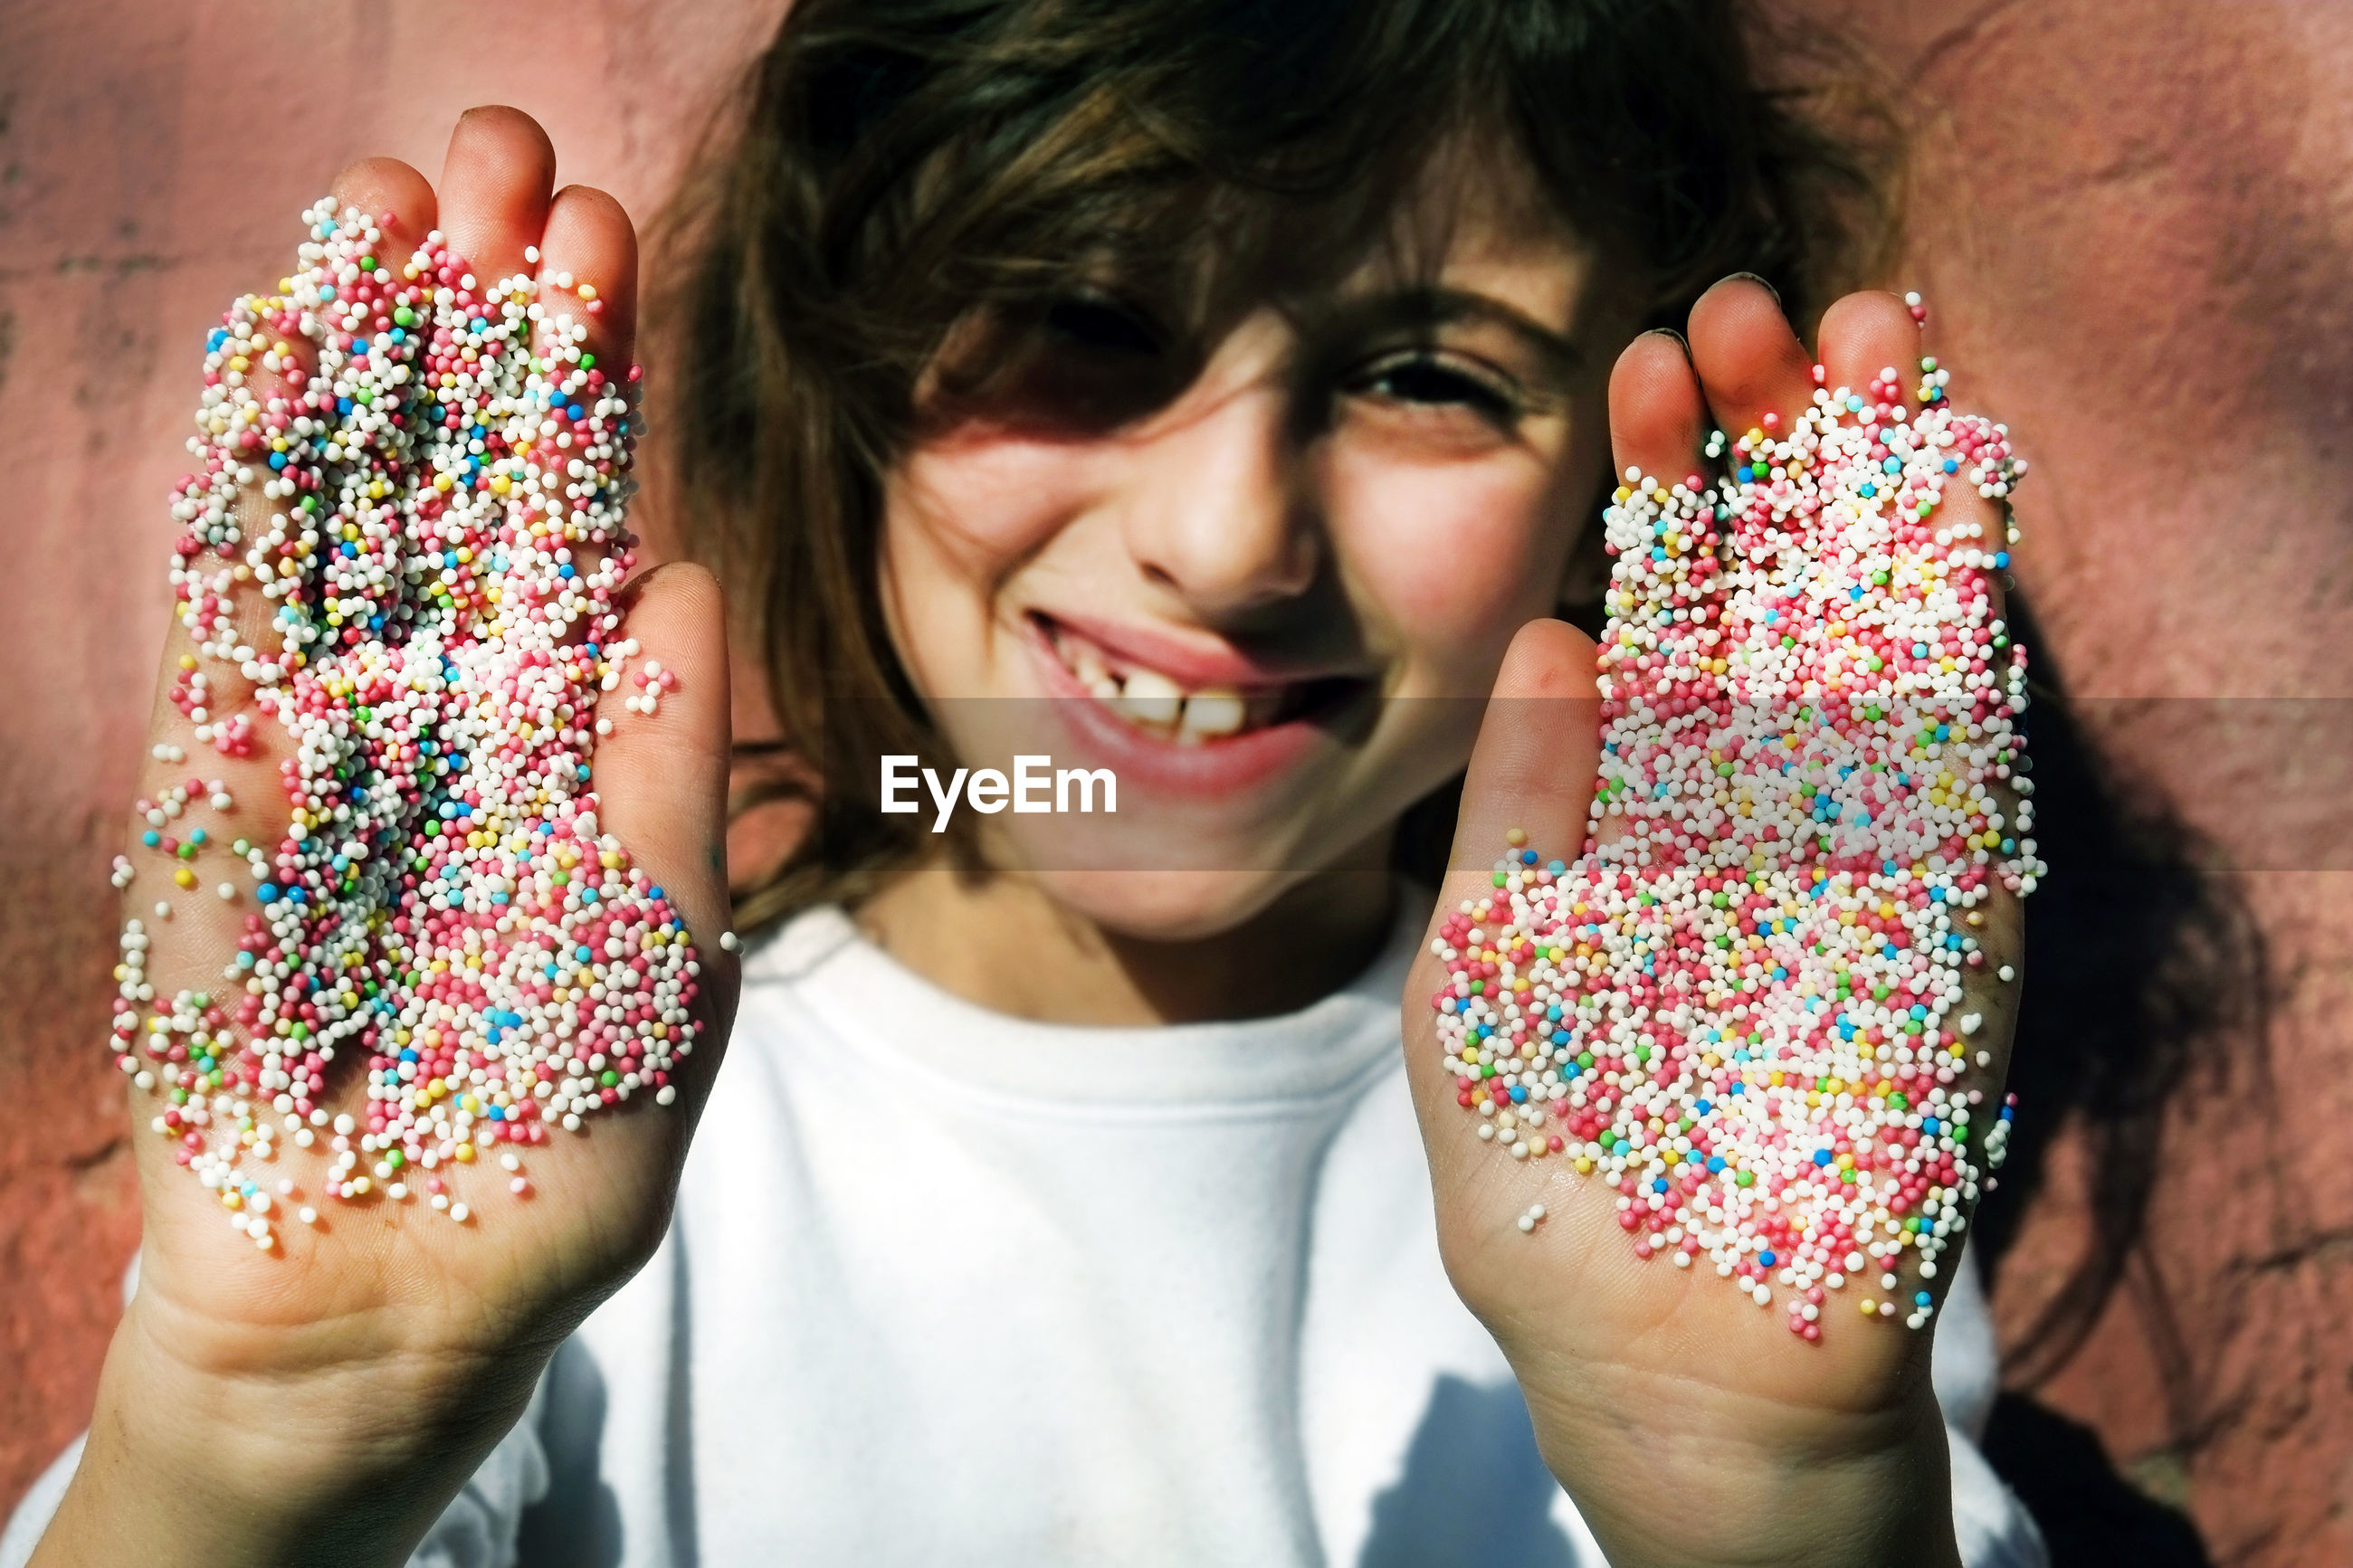 Portrait of smiling woman with multi colored candies on hand